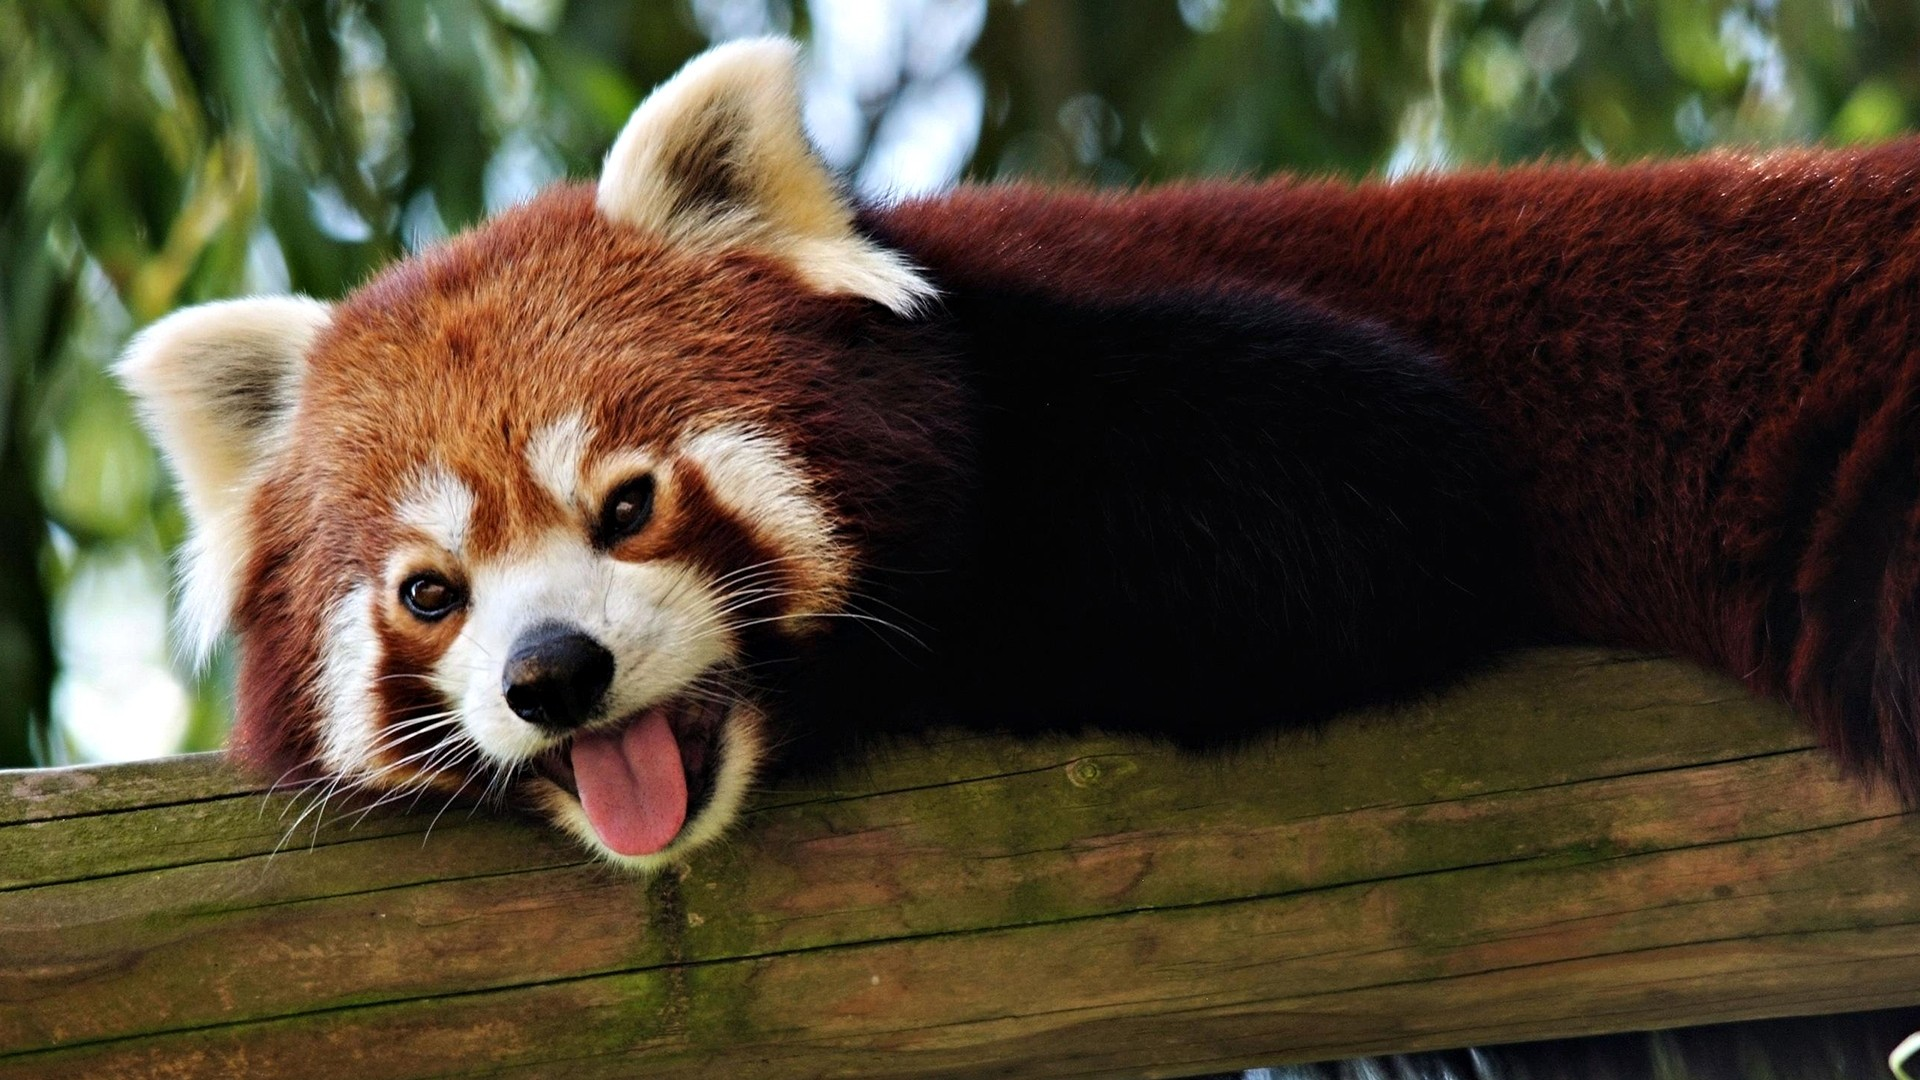 Red Panda hd wallpaper download